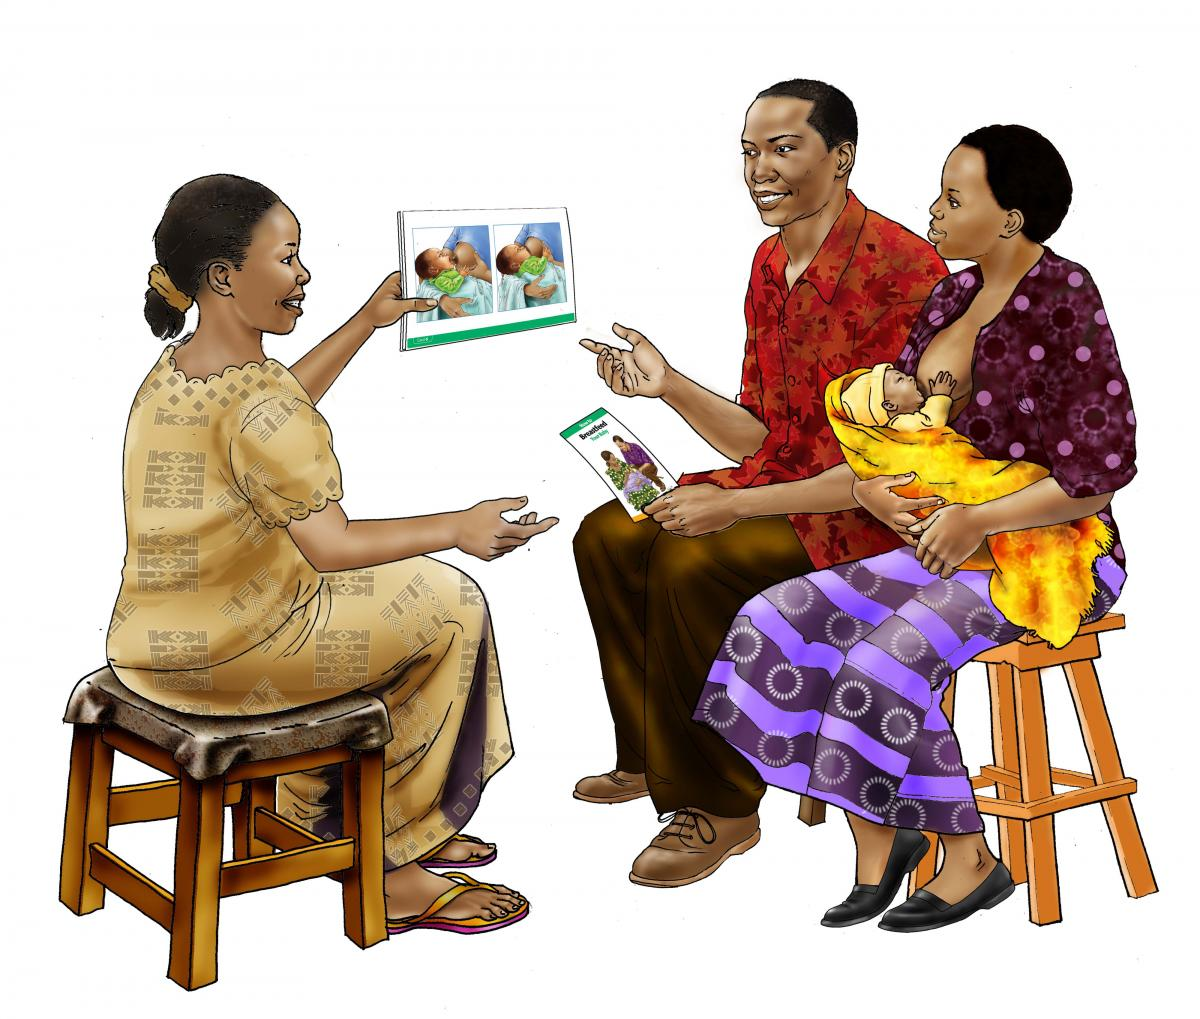 Counseling - Breastfeeding counseling - 01B - Non-country specific